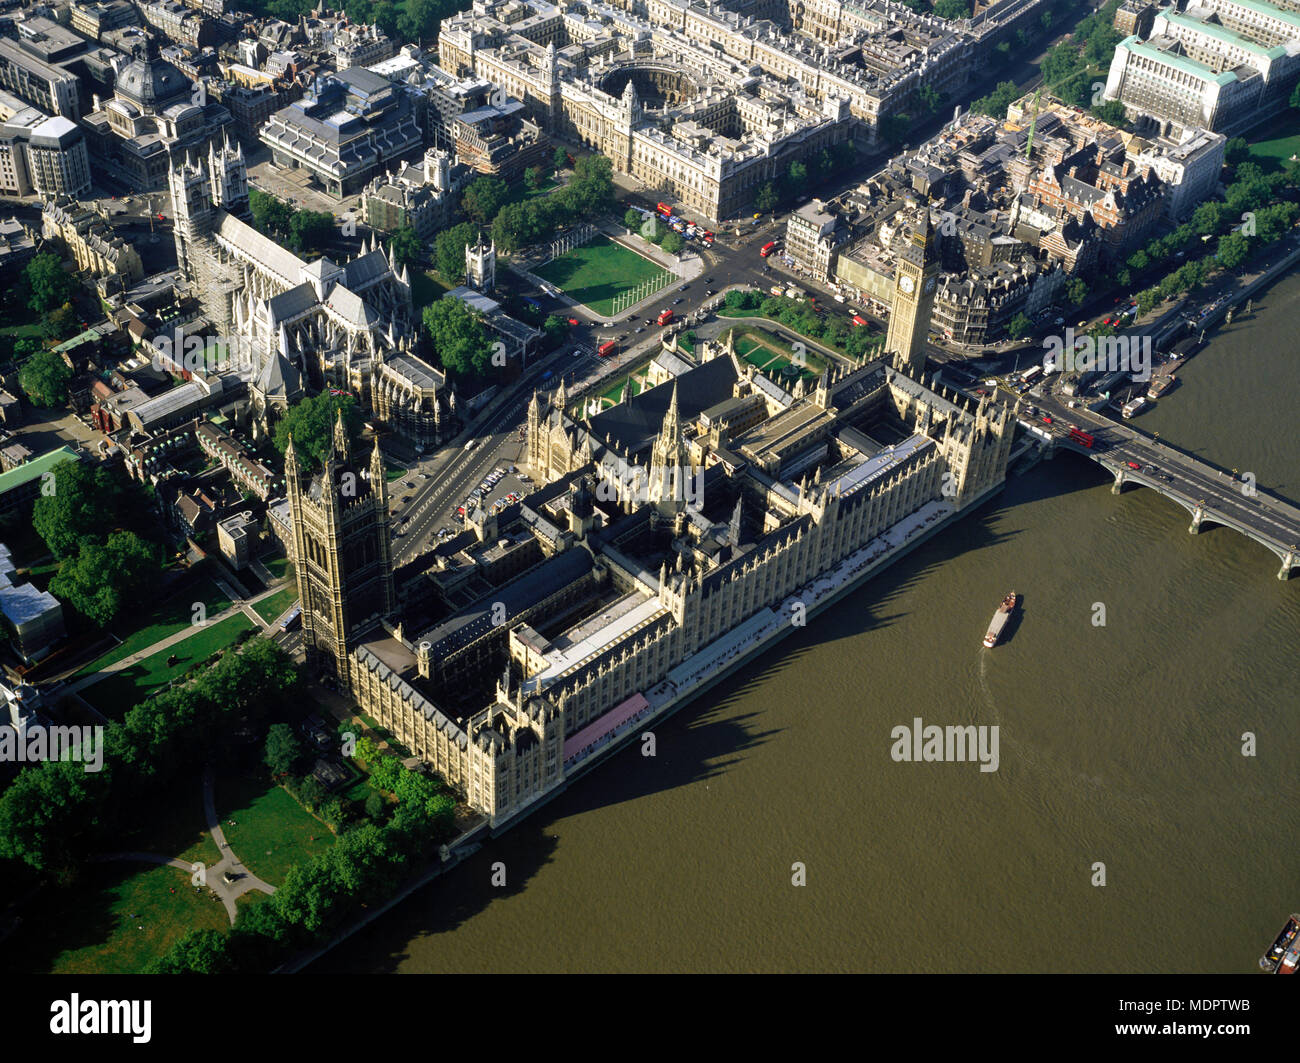 London, UK; Aerial view of the Houses of Parliament - Stock Image